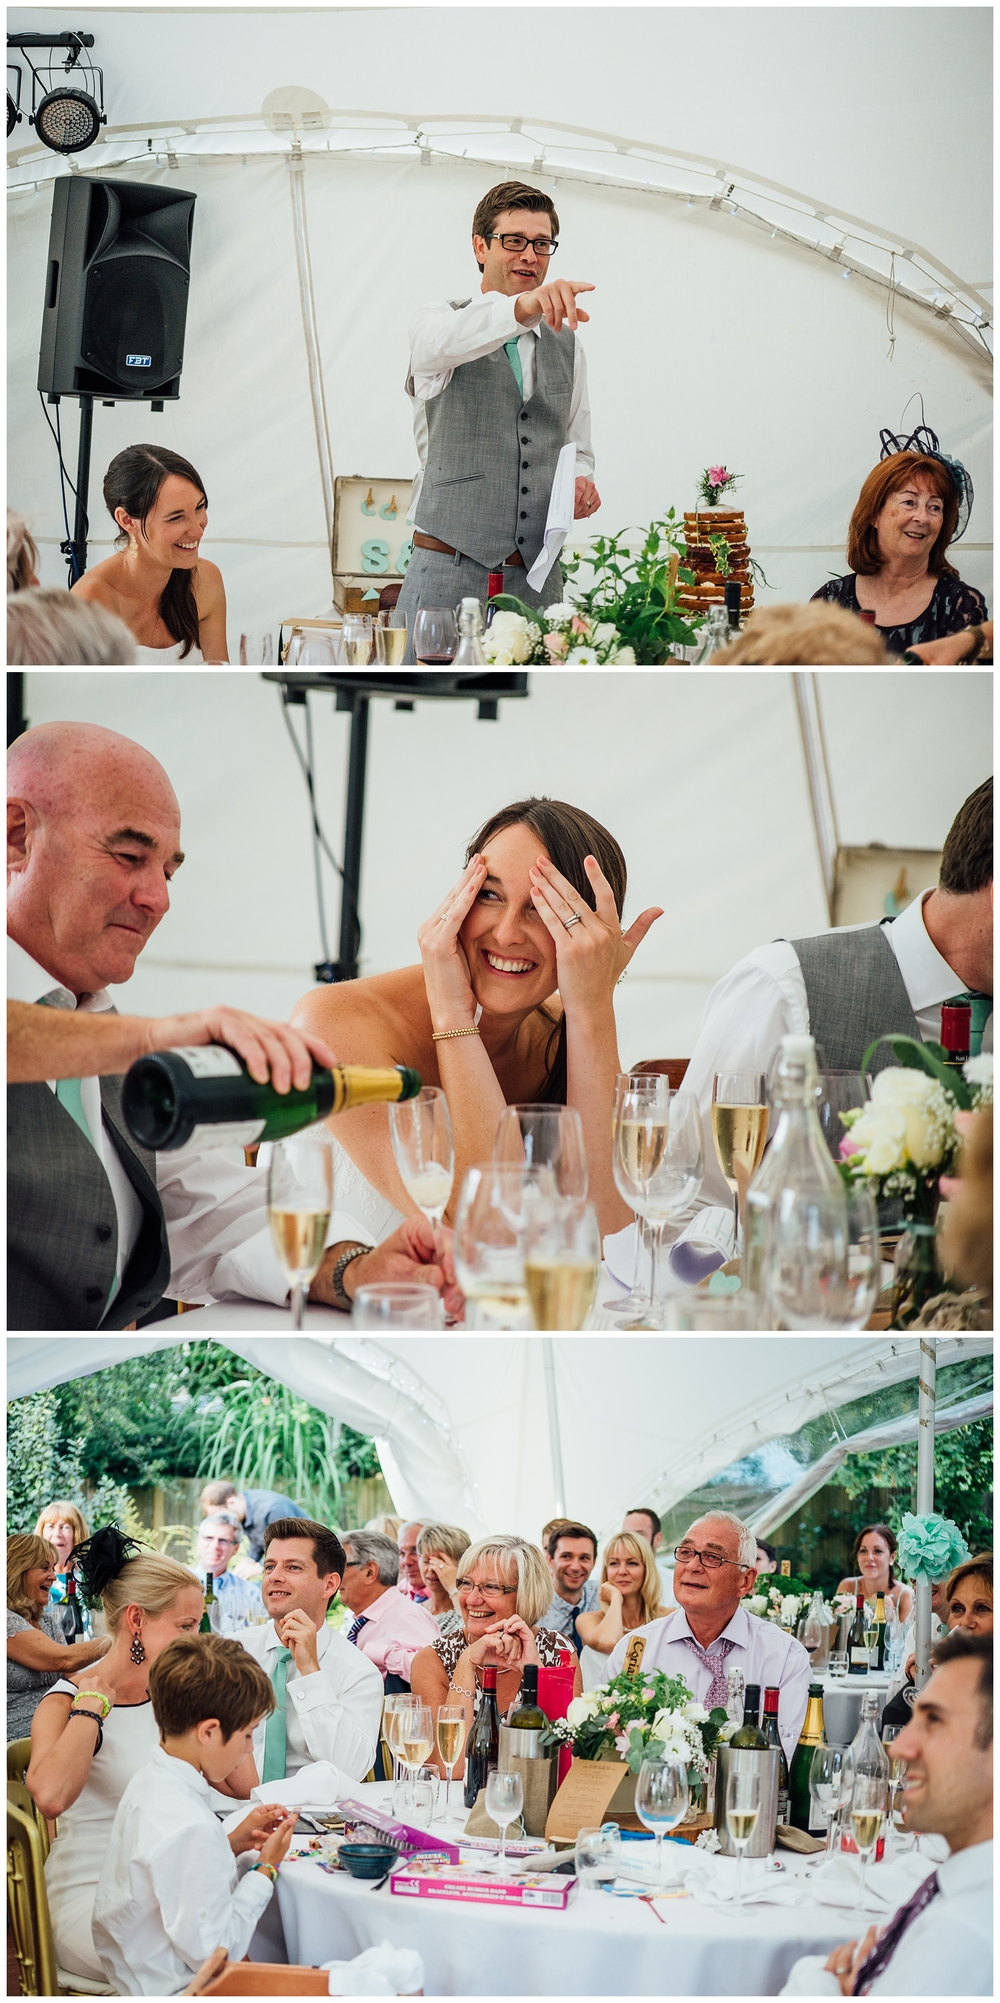 Nikki_Cooper_Photography_Lucy&Scott_Wedding_Photos_The_Crab_Tree_Pub_Horsham_1119.jpg